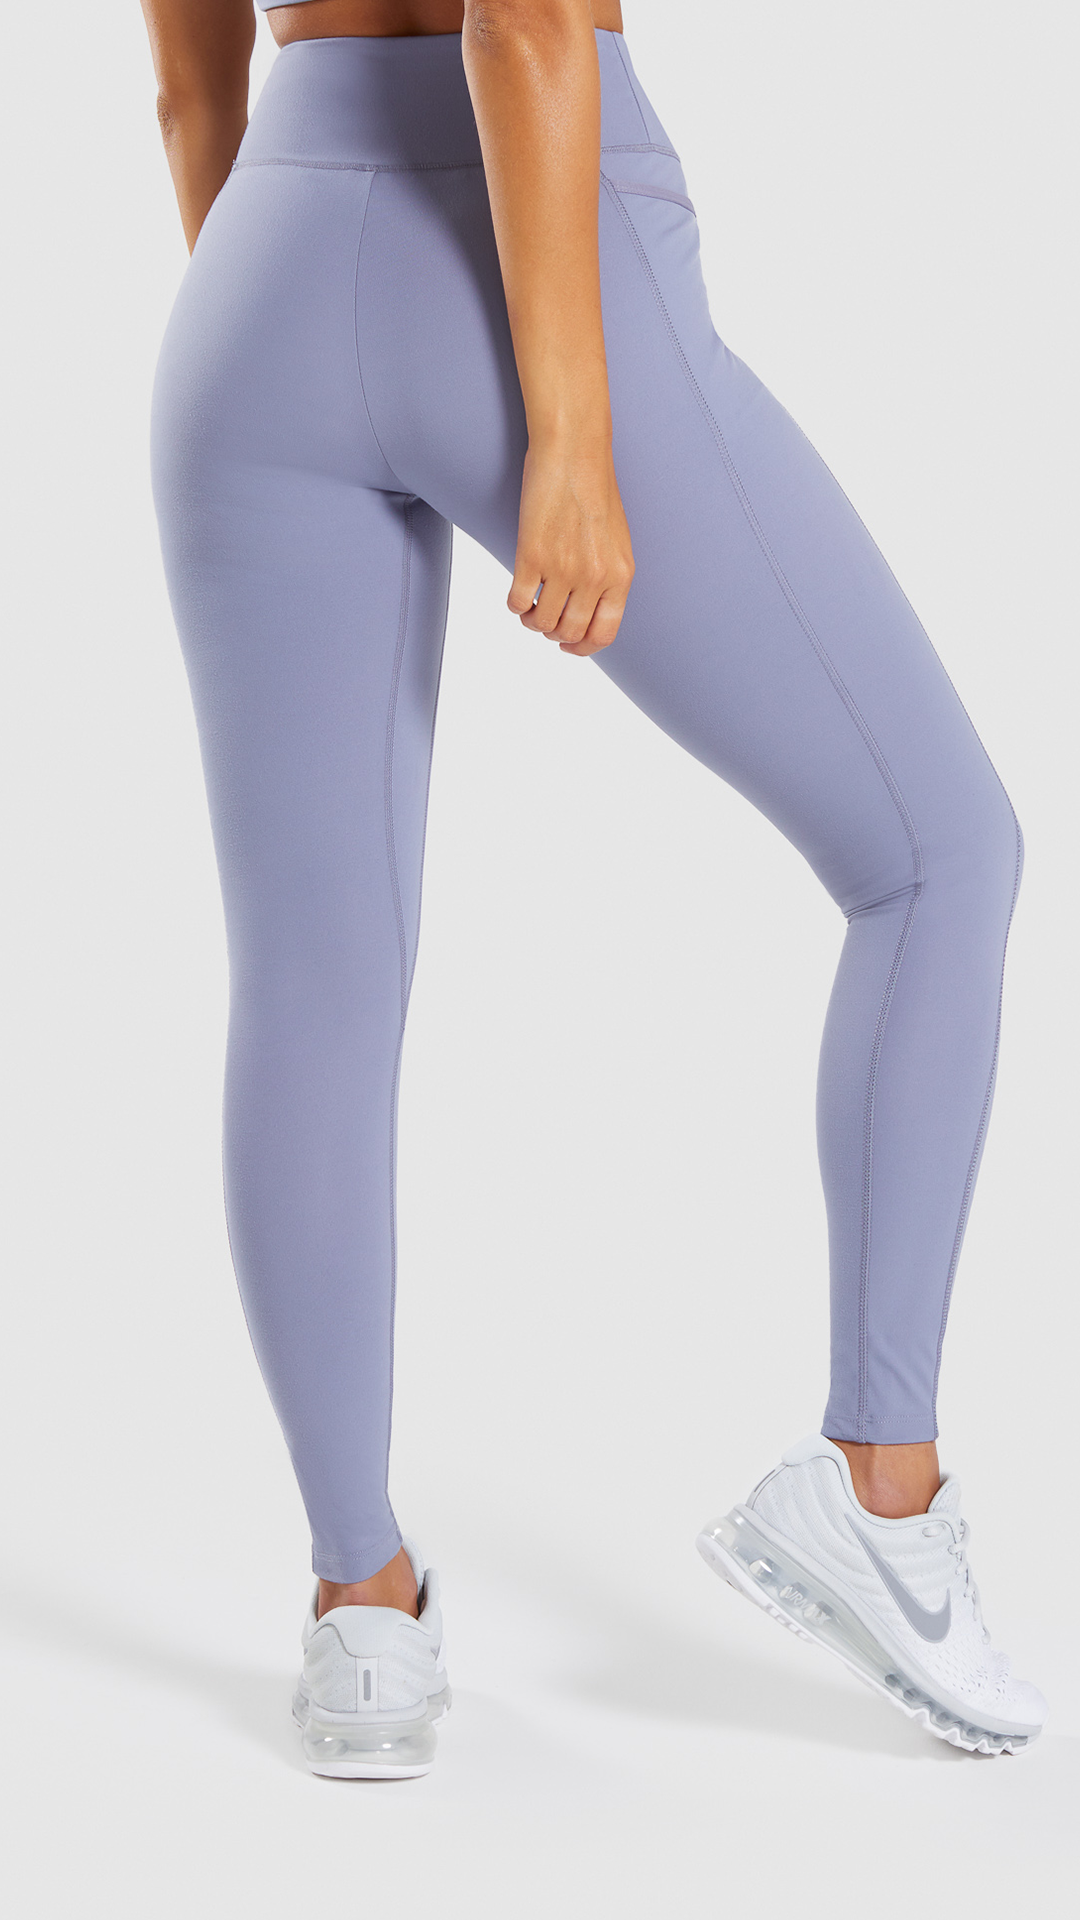 c7a96b17d65d9 The Dreamy Leggings 2.0. With a high-waisted fit